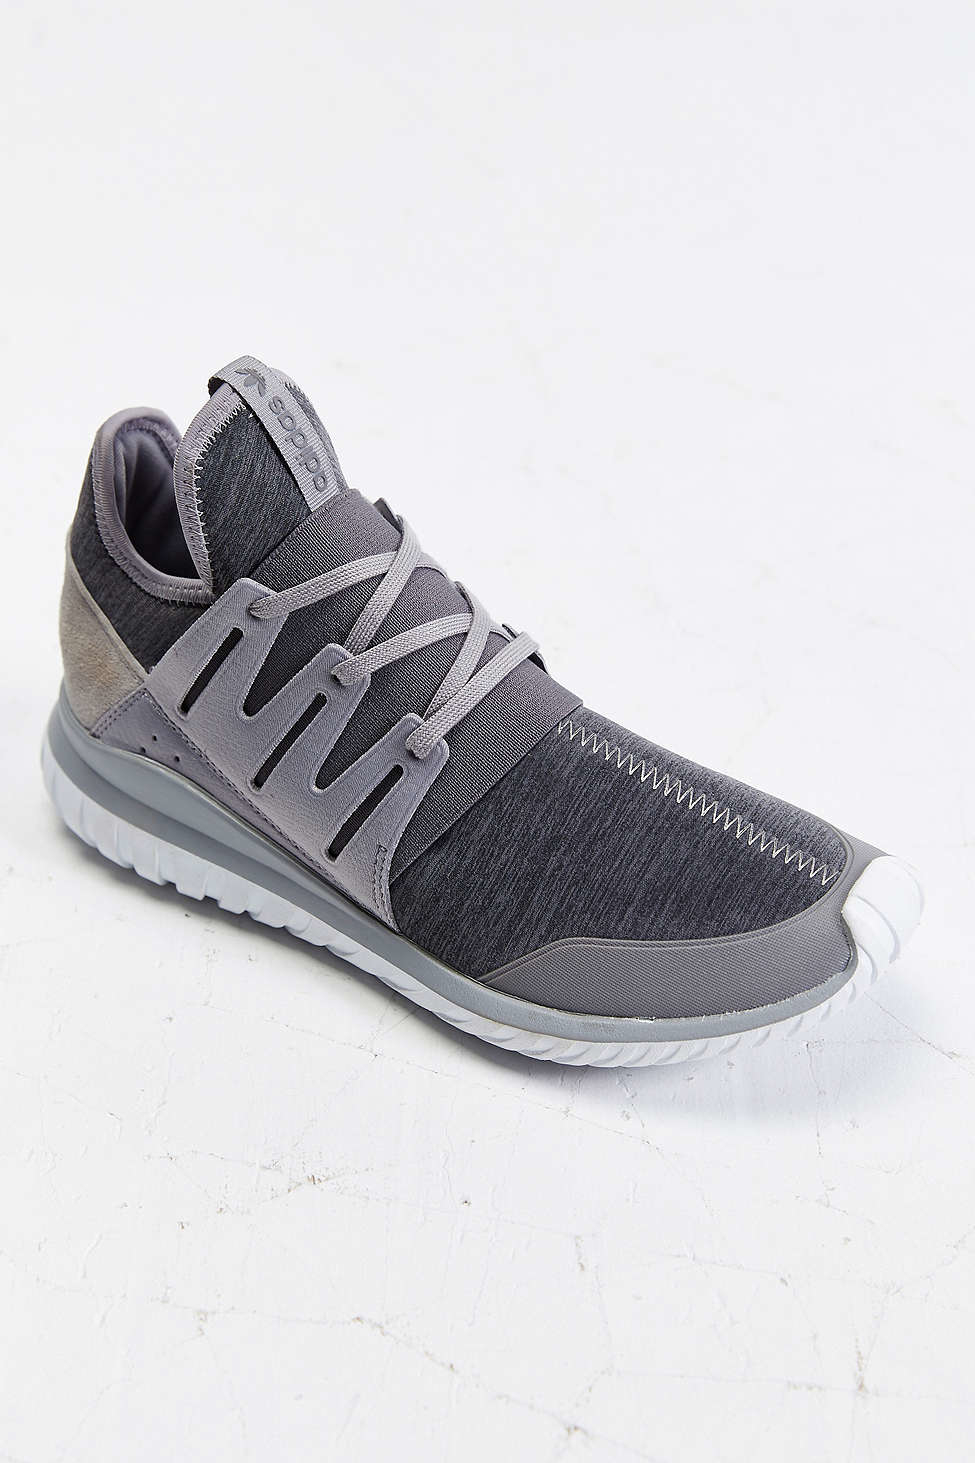 Adidas Originals Tubular Radial Sneaker In Gray For Men Lyst